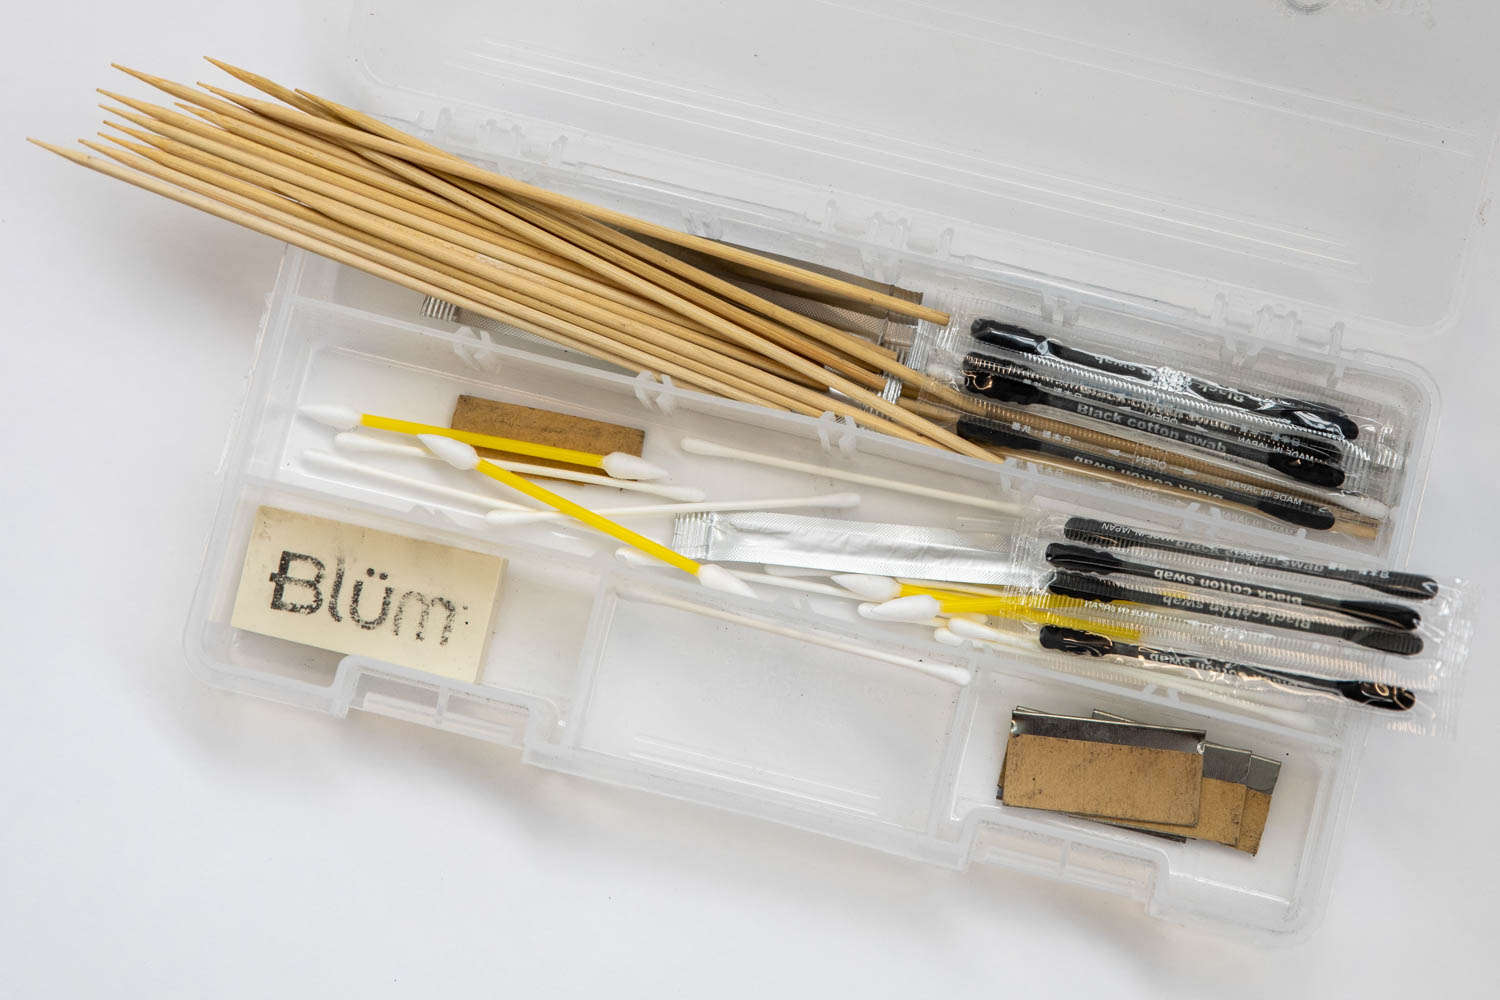 Bamboo sticks and cotton swabs